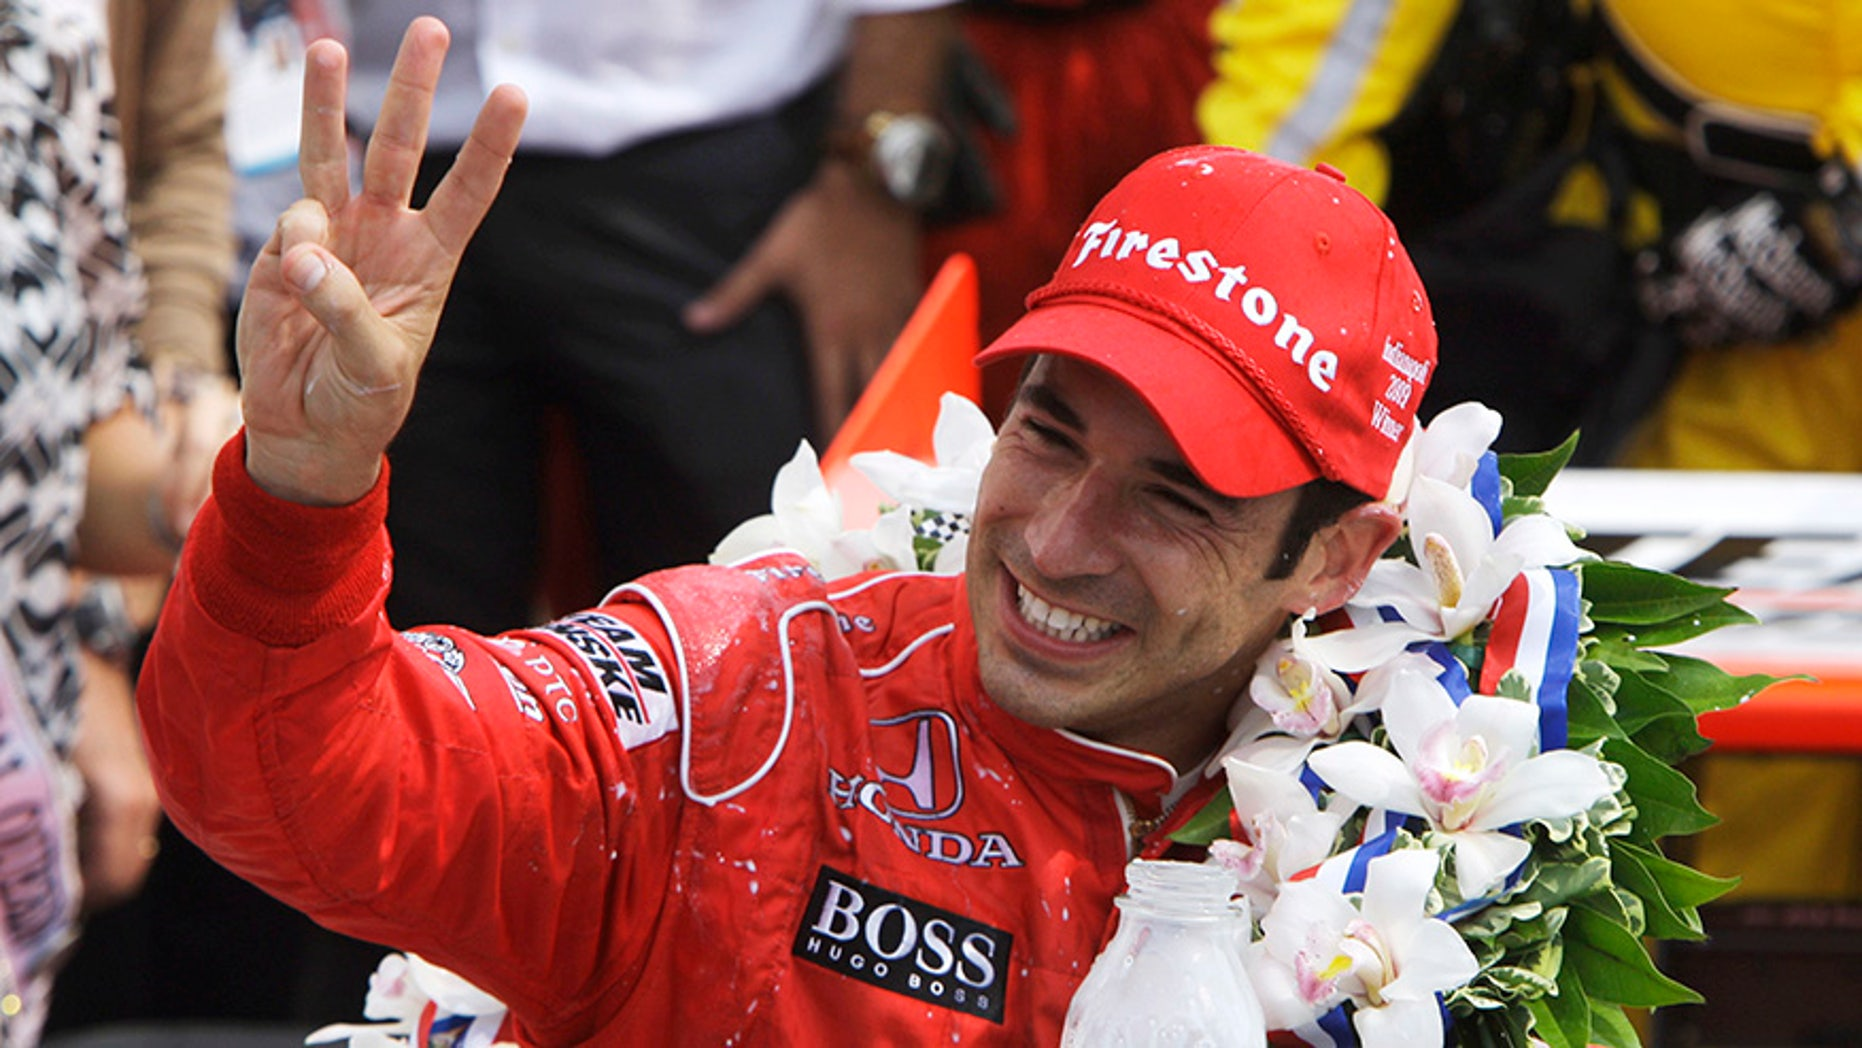 Helio Castroneves is on of seven drivers who have won the Indy 500 three times